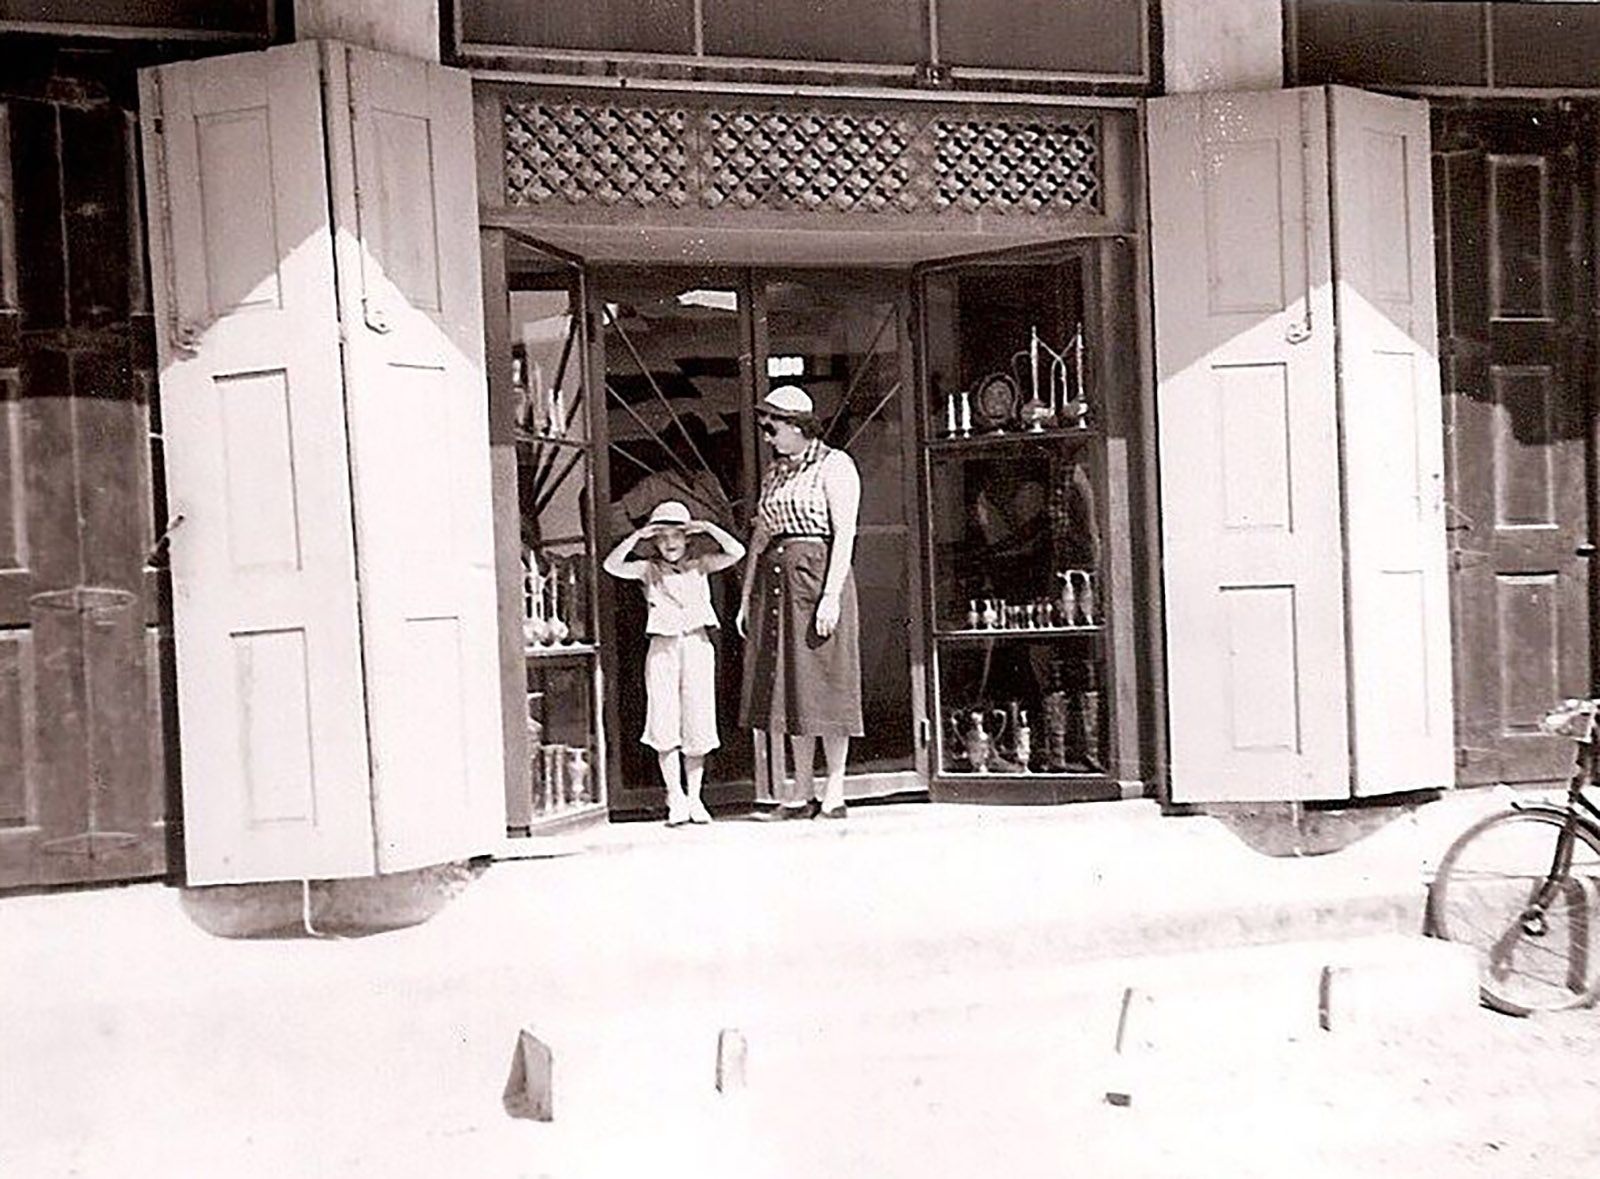 The author's mother and grandmother in front of a shop in Al Khobar, Saudi Arabia, early 1950s